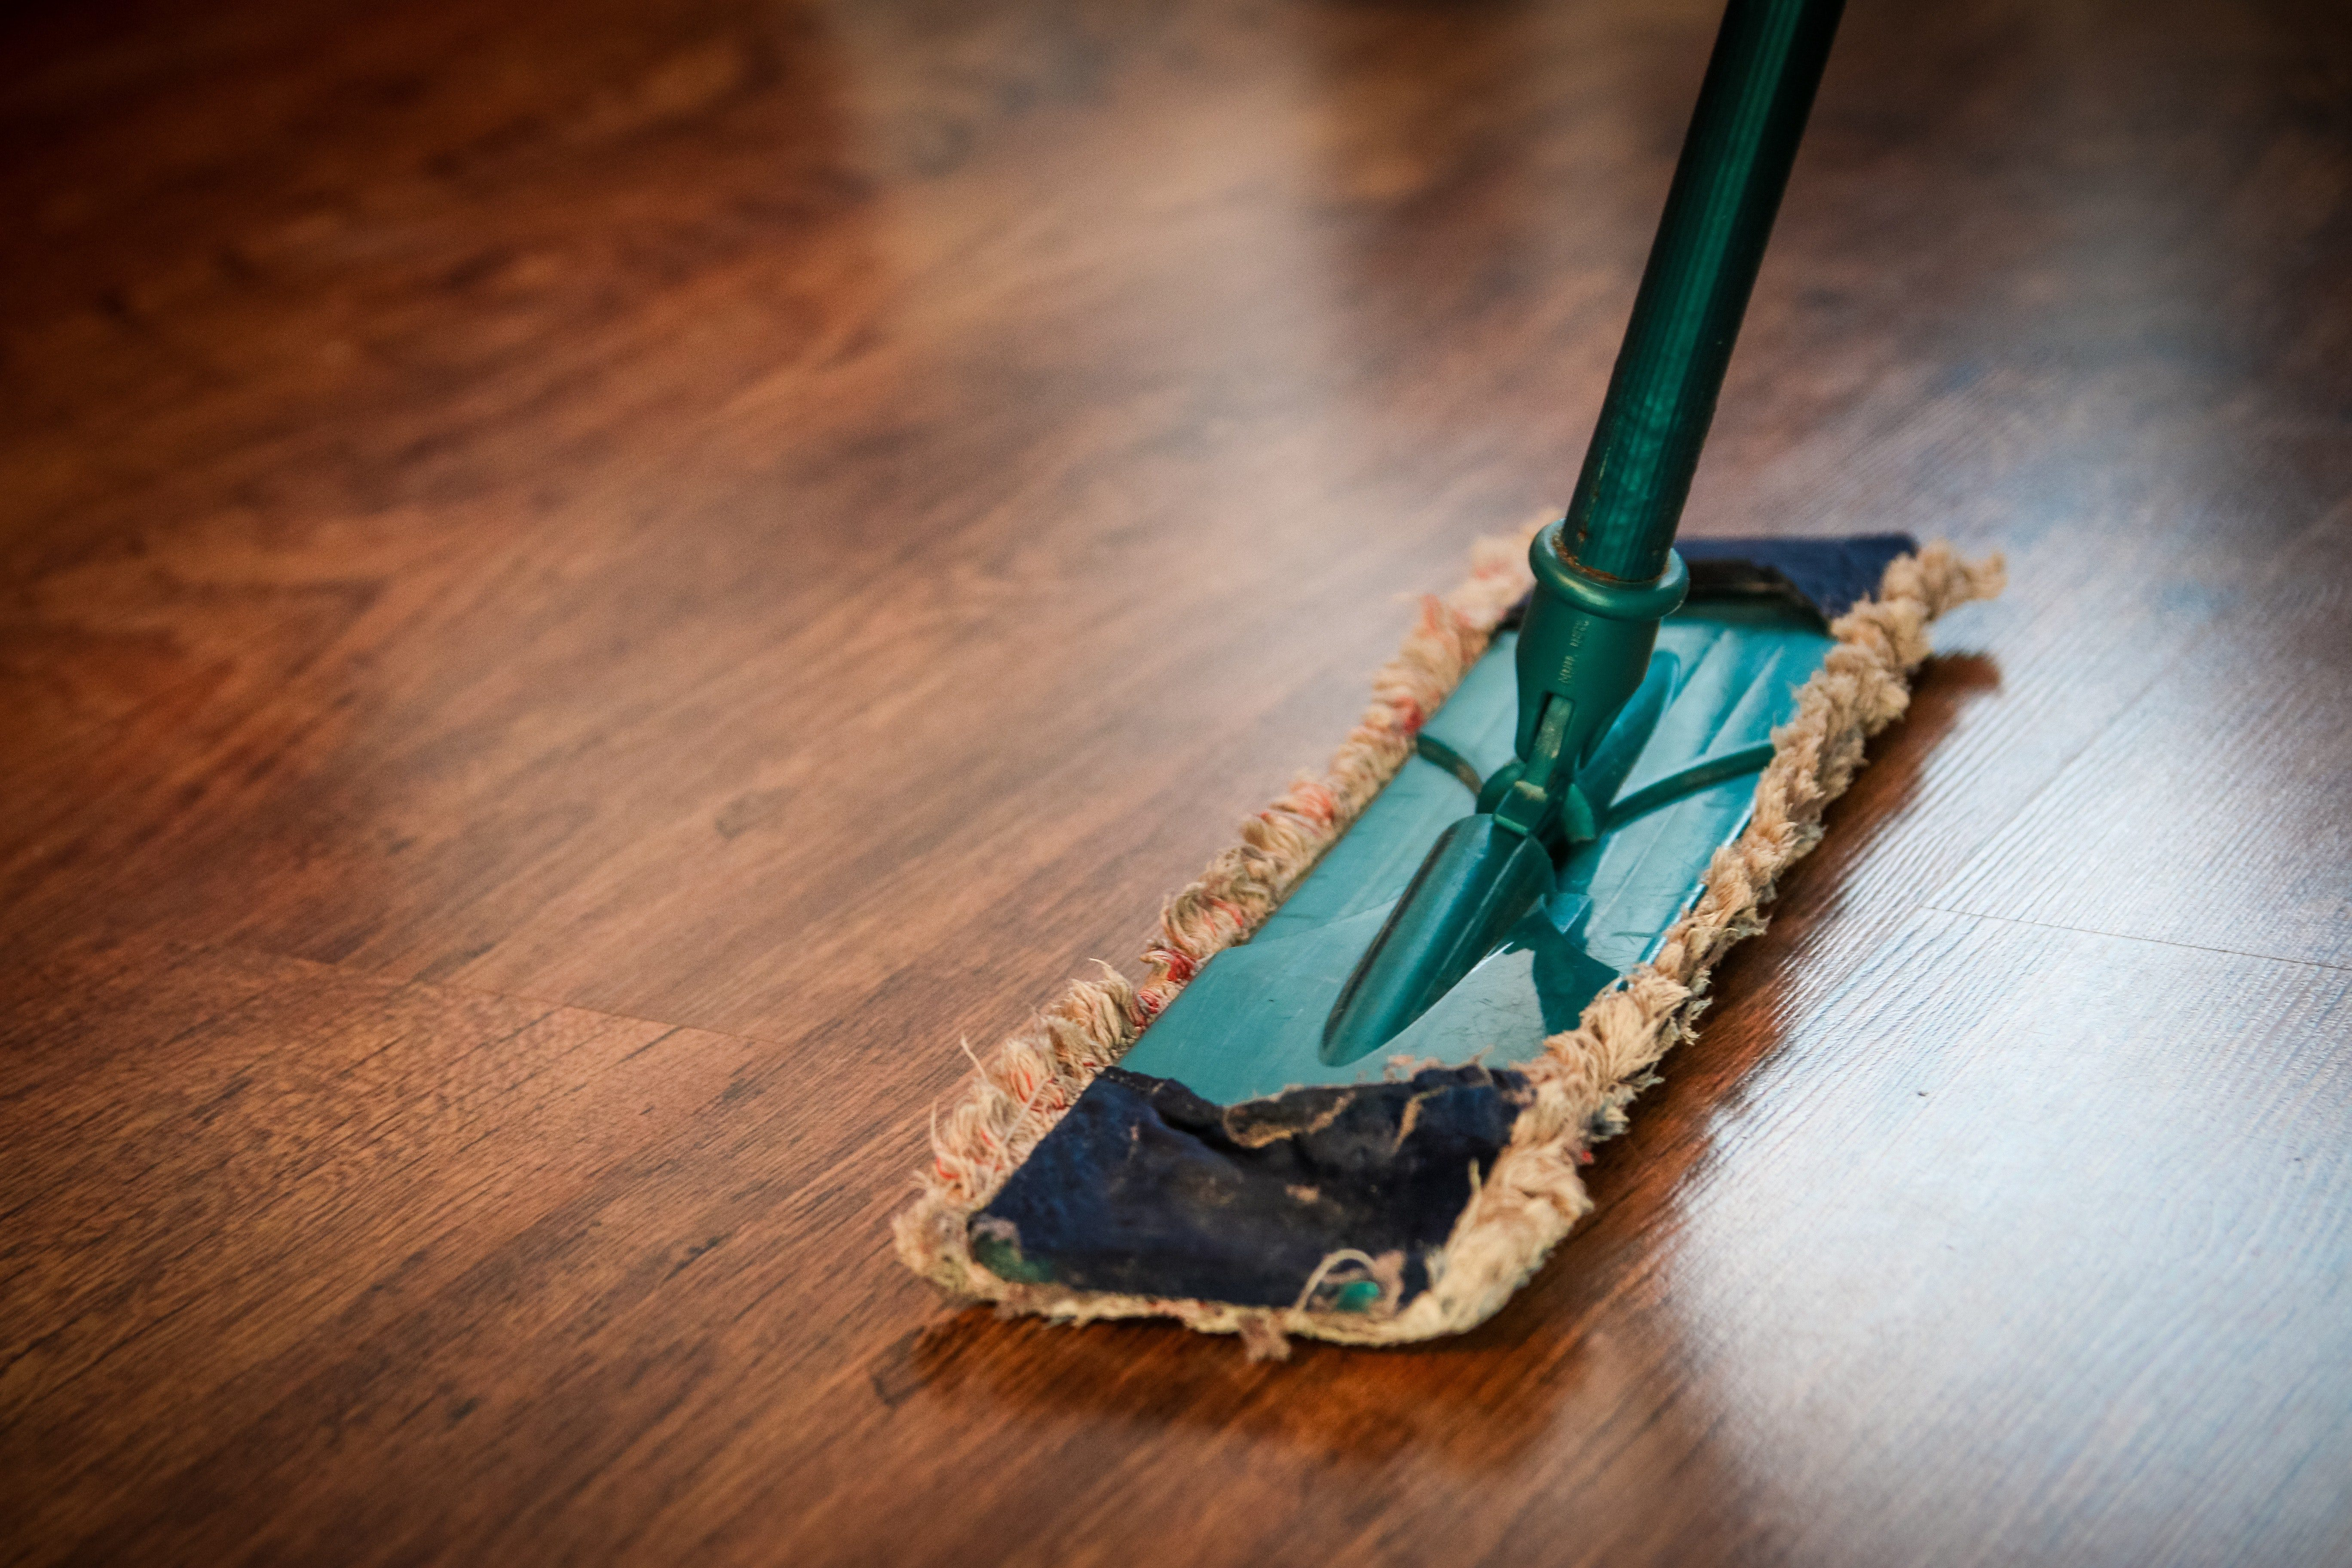 Home Time/No Time! Cleaning Your Home Quickly